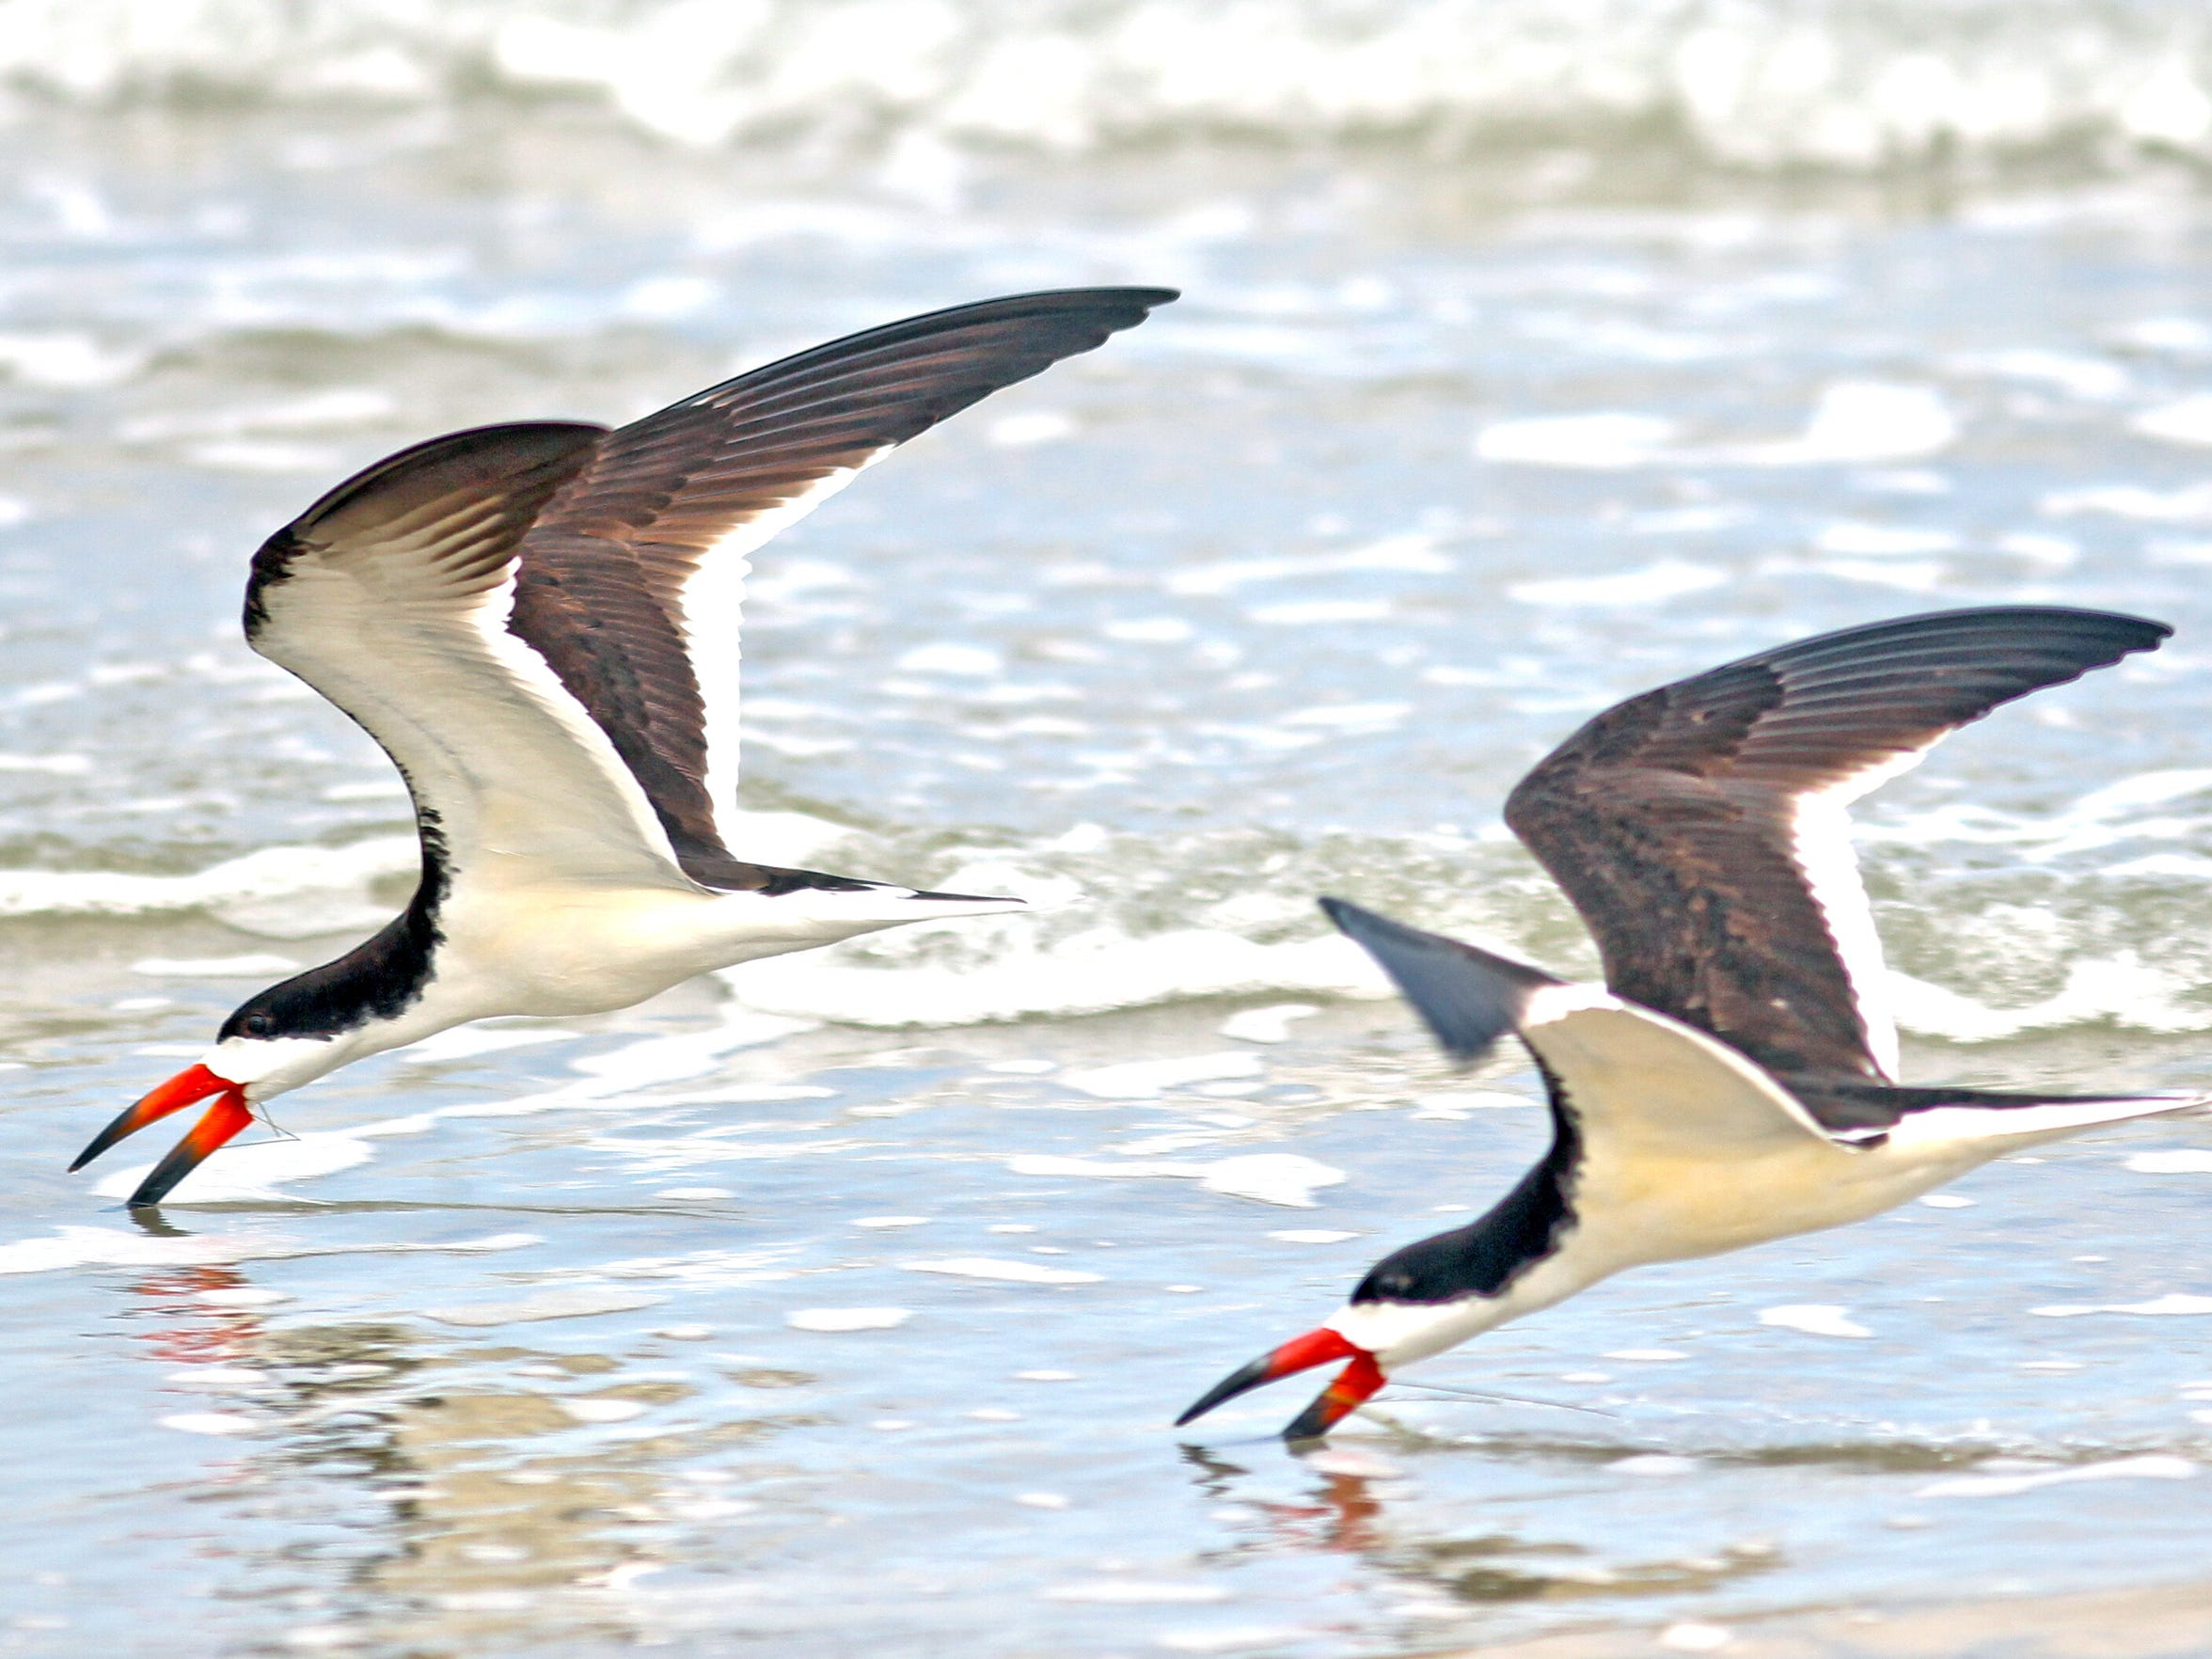 Black skimmers enjoyed nesting success after Harvey that was better than expected in stormed damaged habitats.